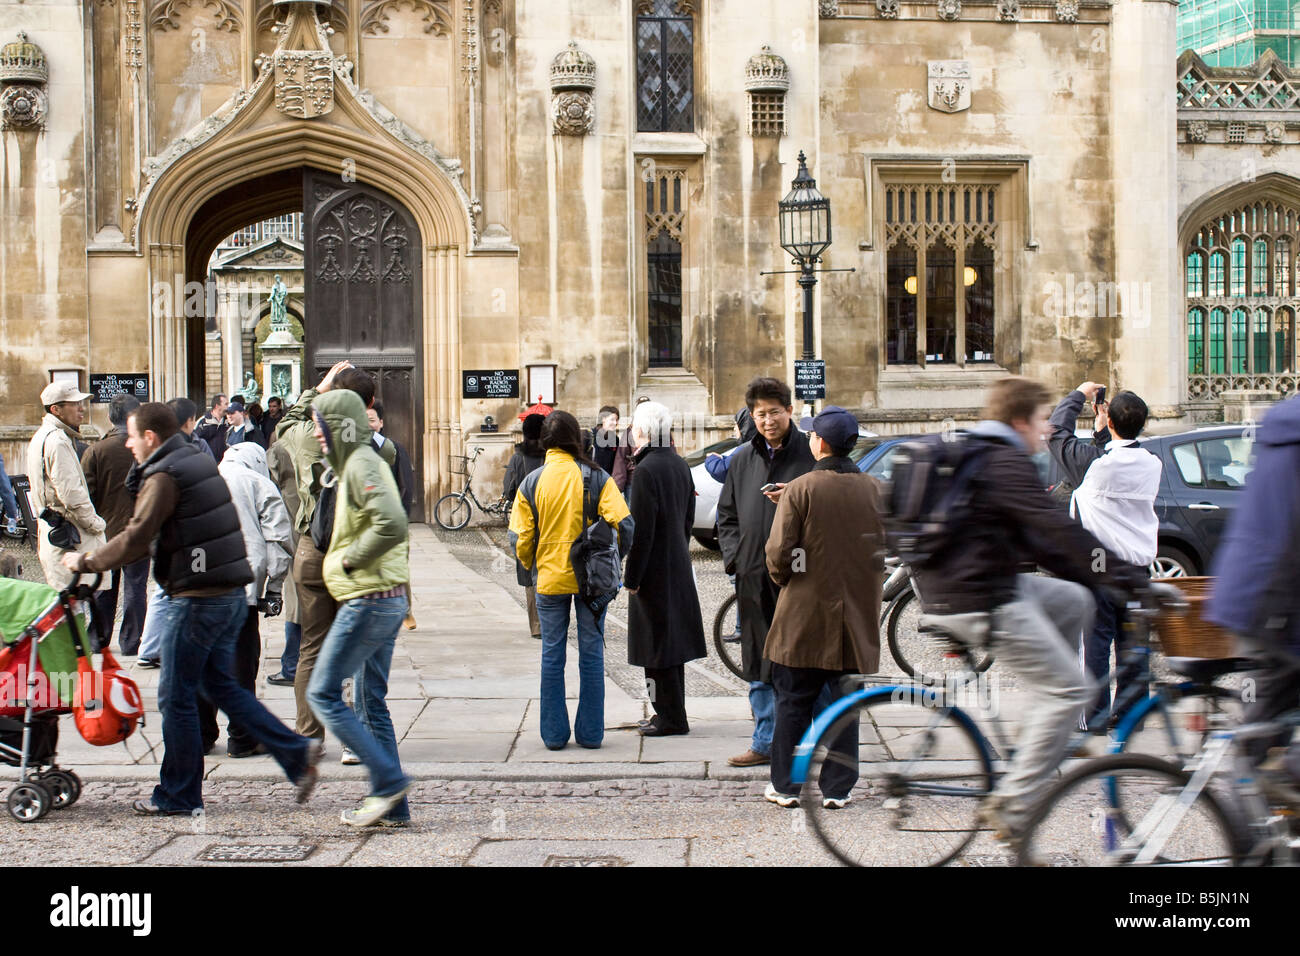 Tourists visiting King's College in Cambridge UK - Stock Image